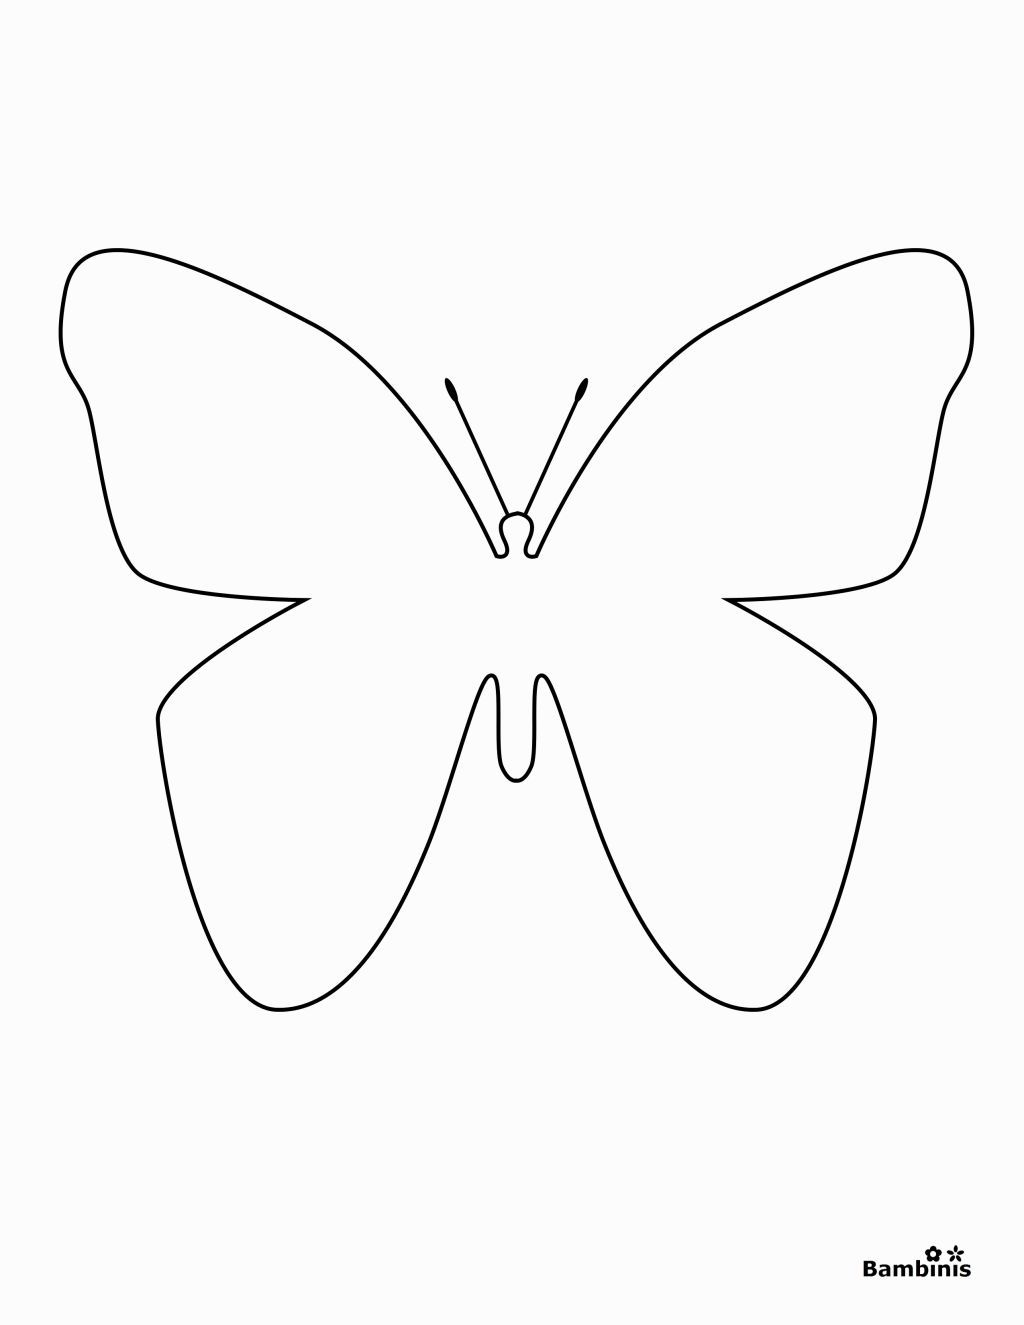 Simple Butterfly Coloring Pages | Coloring Pages | Pinterest | Butterfly